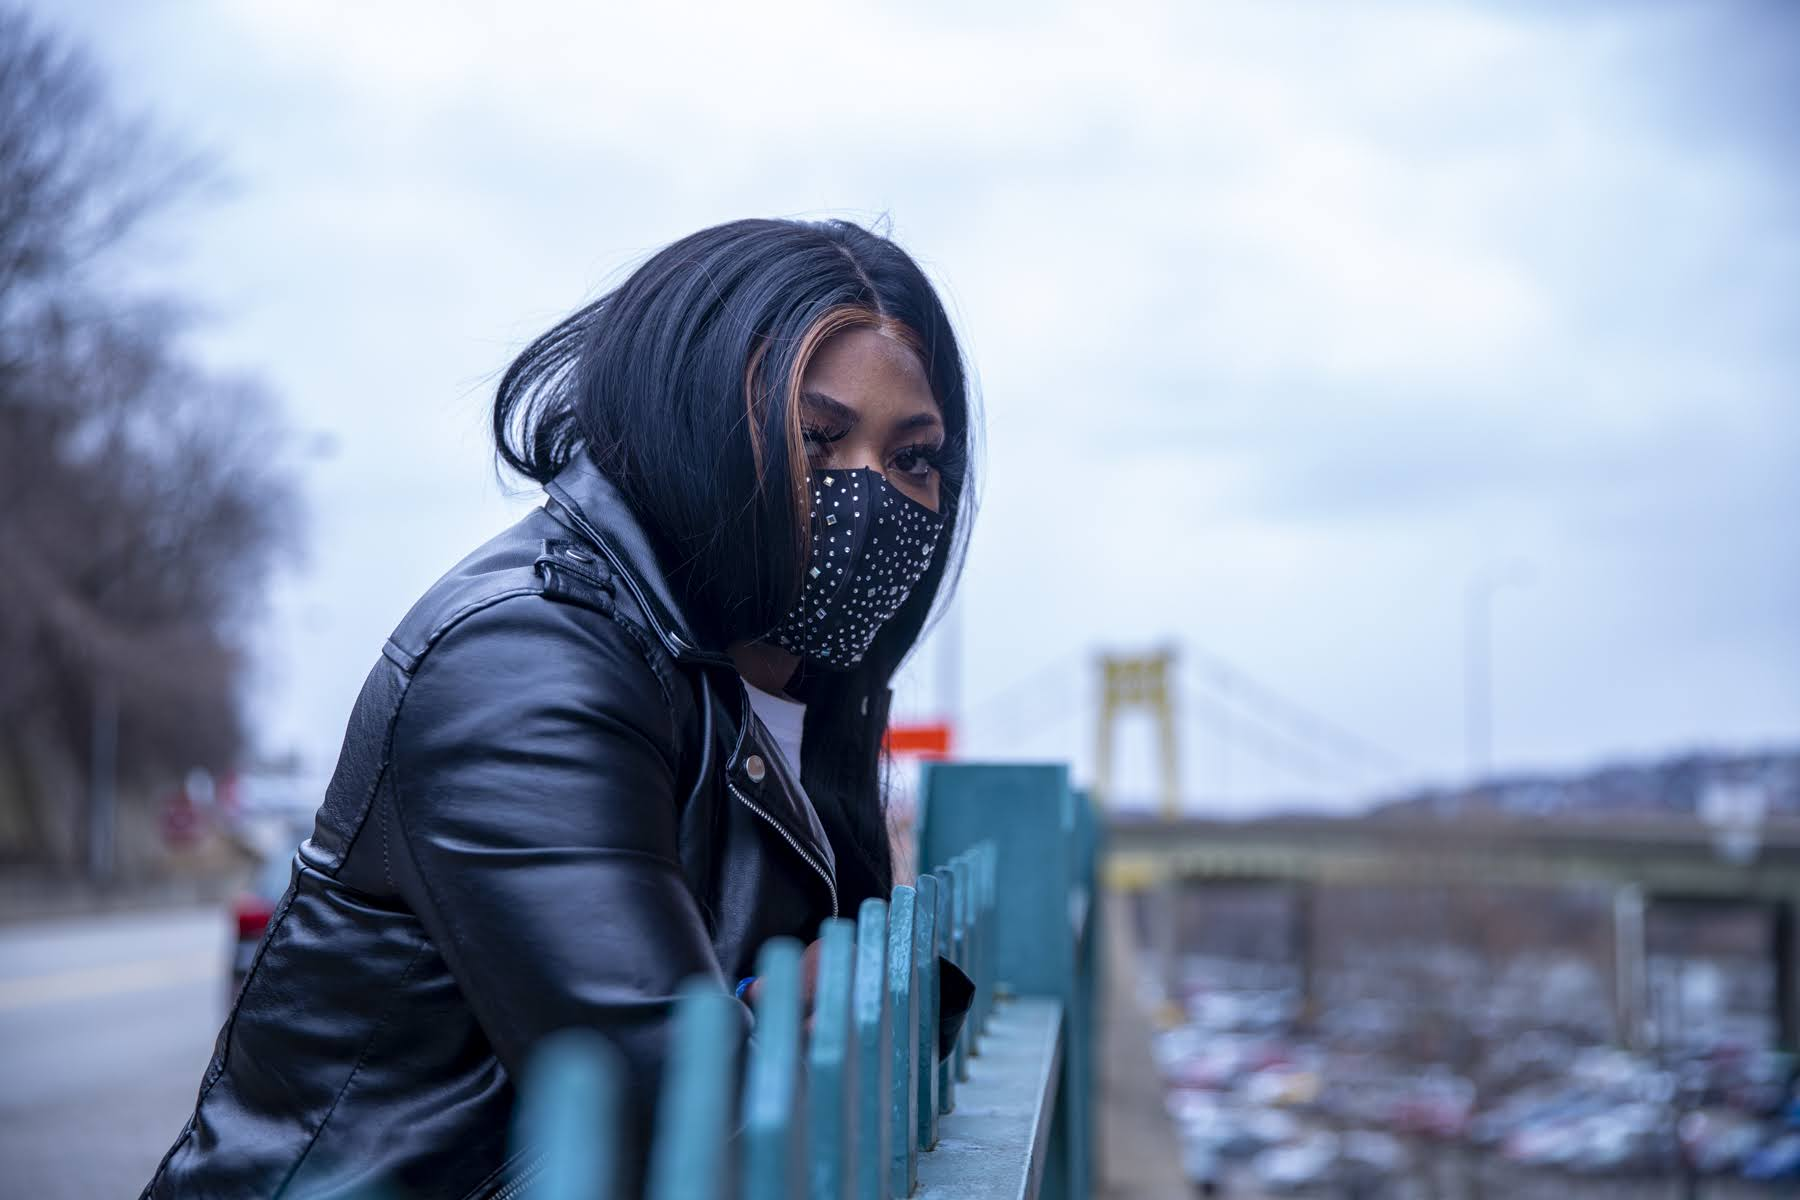 A woman in a black jacket and black face mask with rhinestones leans against a green railing in front of the Allegheny County Jail. A yellow bridge can be seen in the background.